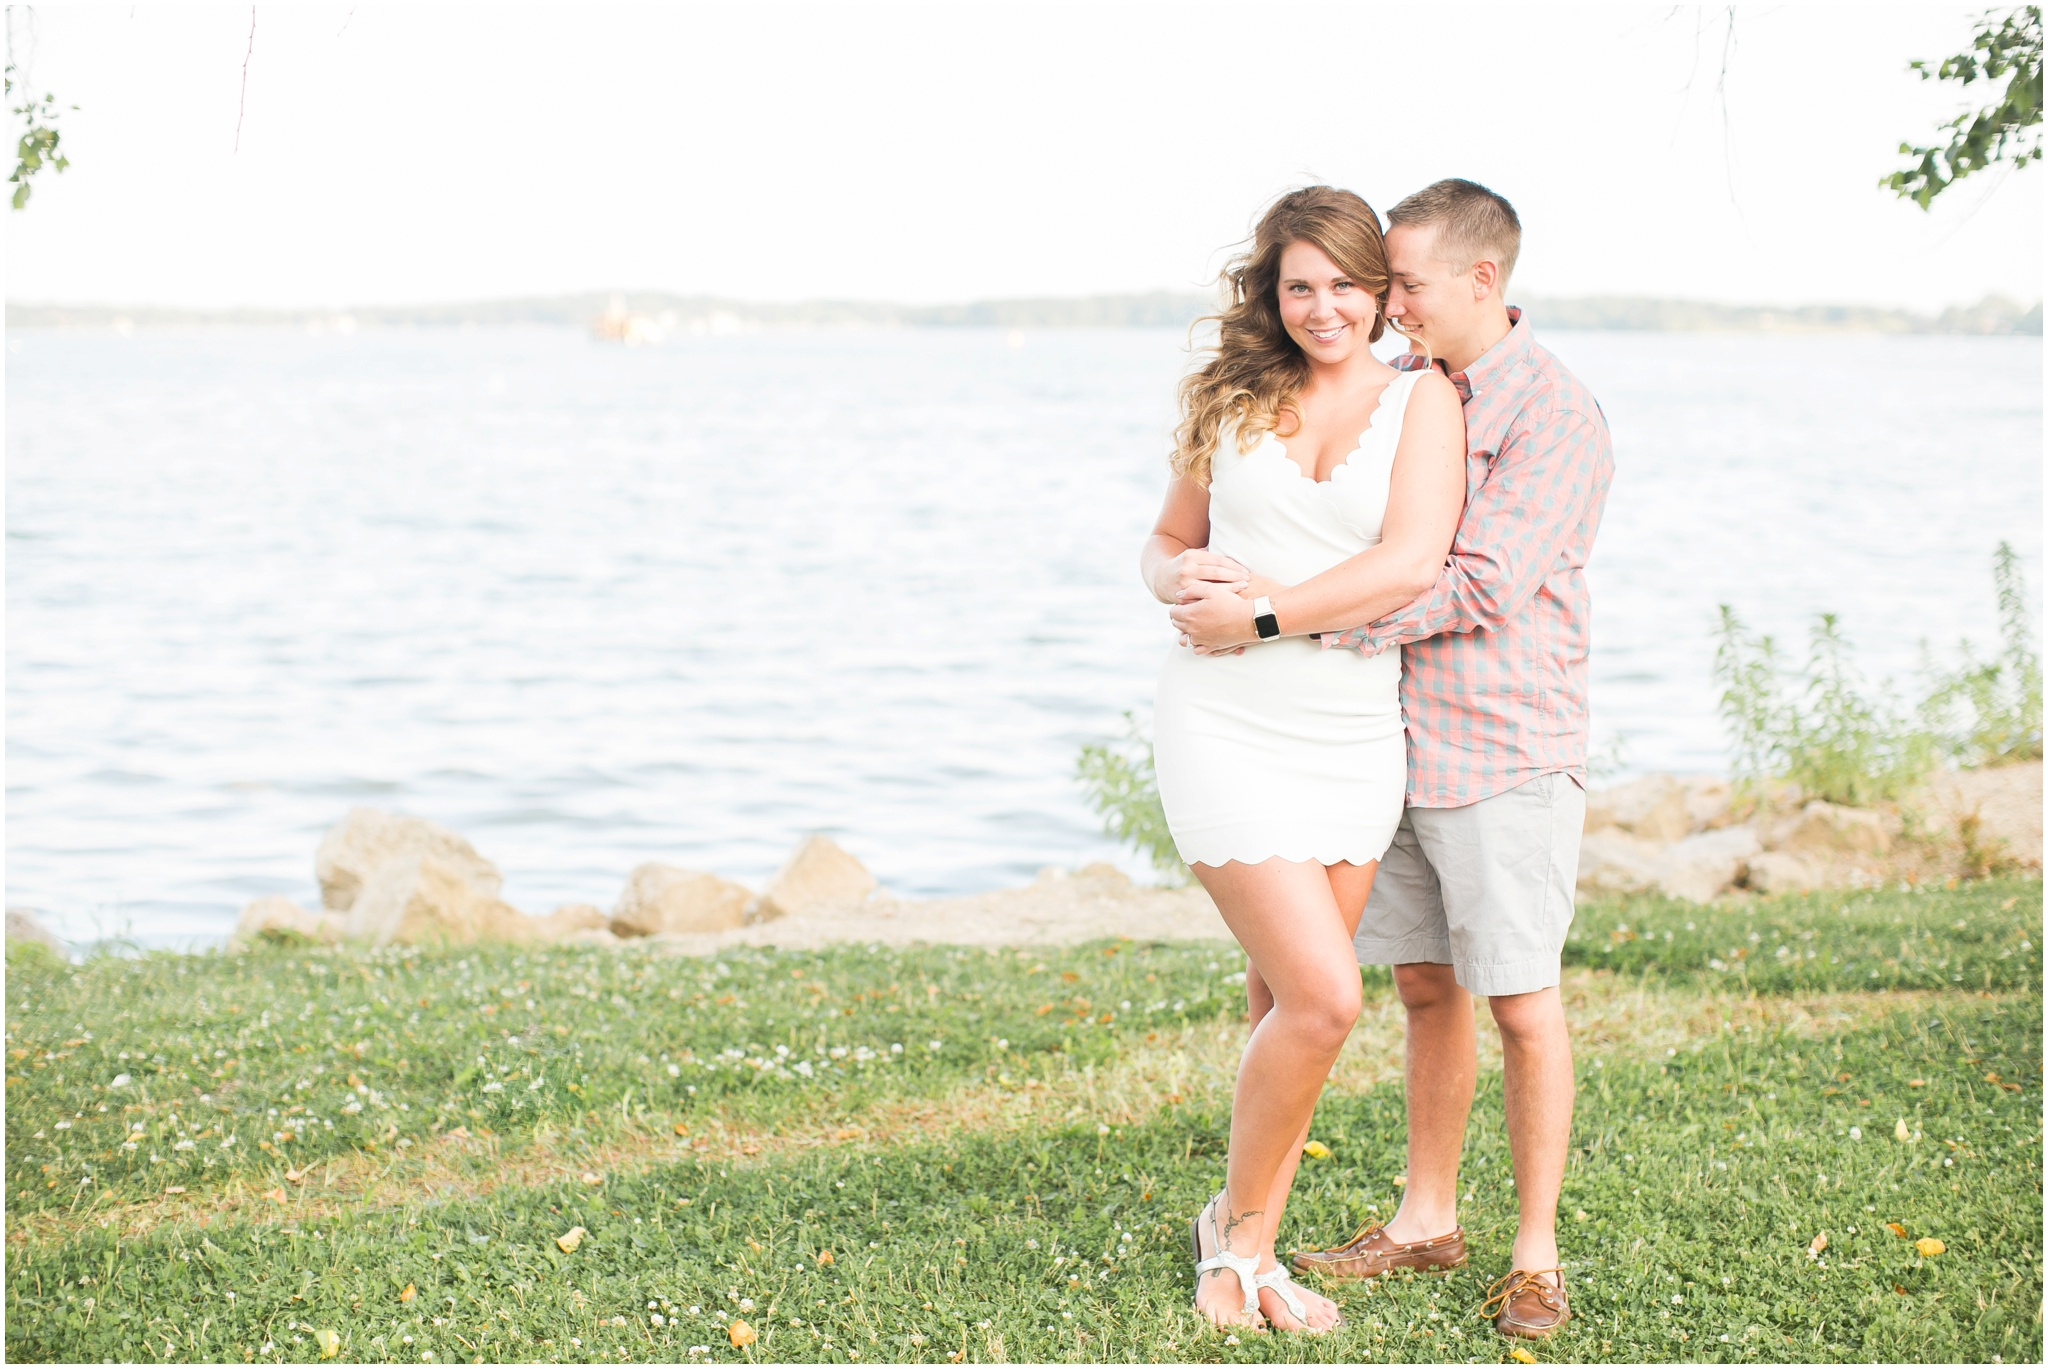 Downtown_Madison_Wisconsin_Engagement_Session_Waterfront_Monona_Terrace_0463.jpg